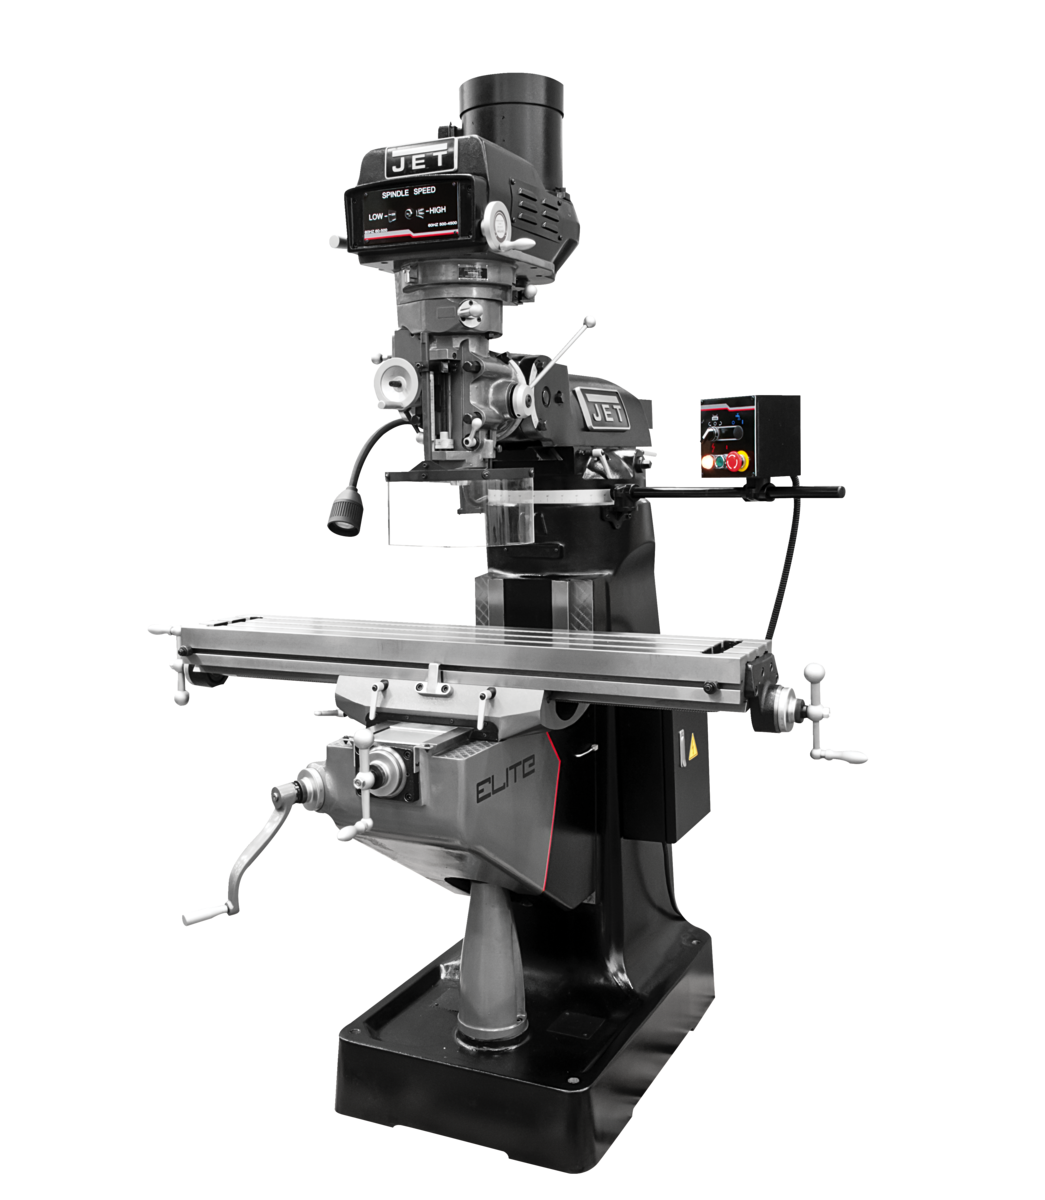 ETM-949 Mill with 3-Axis ACU-RITE 203 (Quill) DRO and Servo X, Y-Axis Powerfeeds